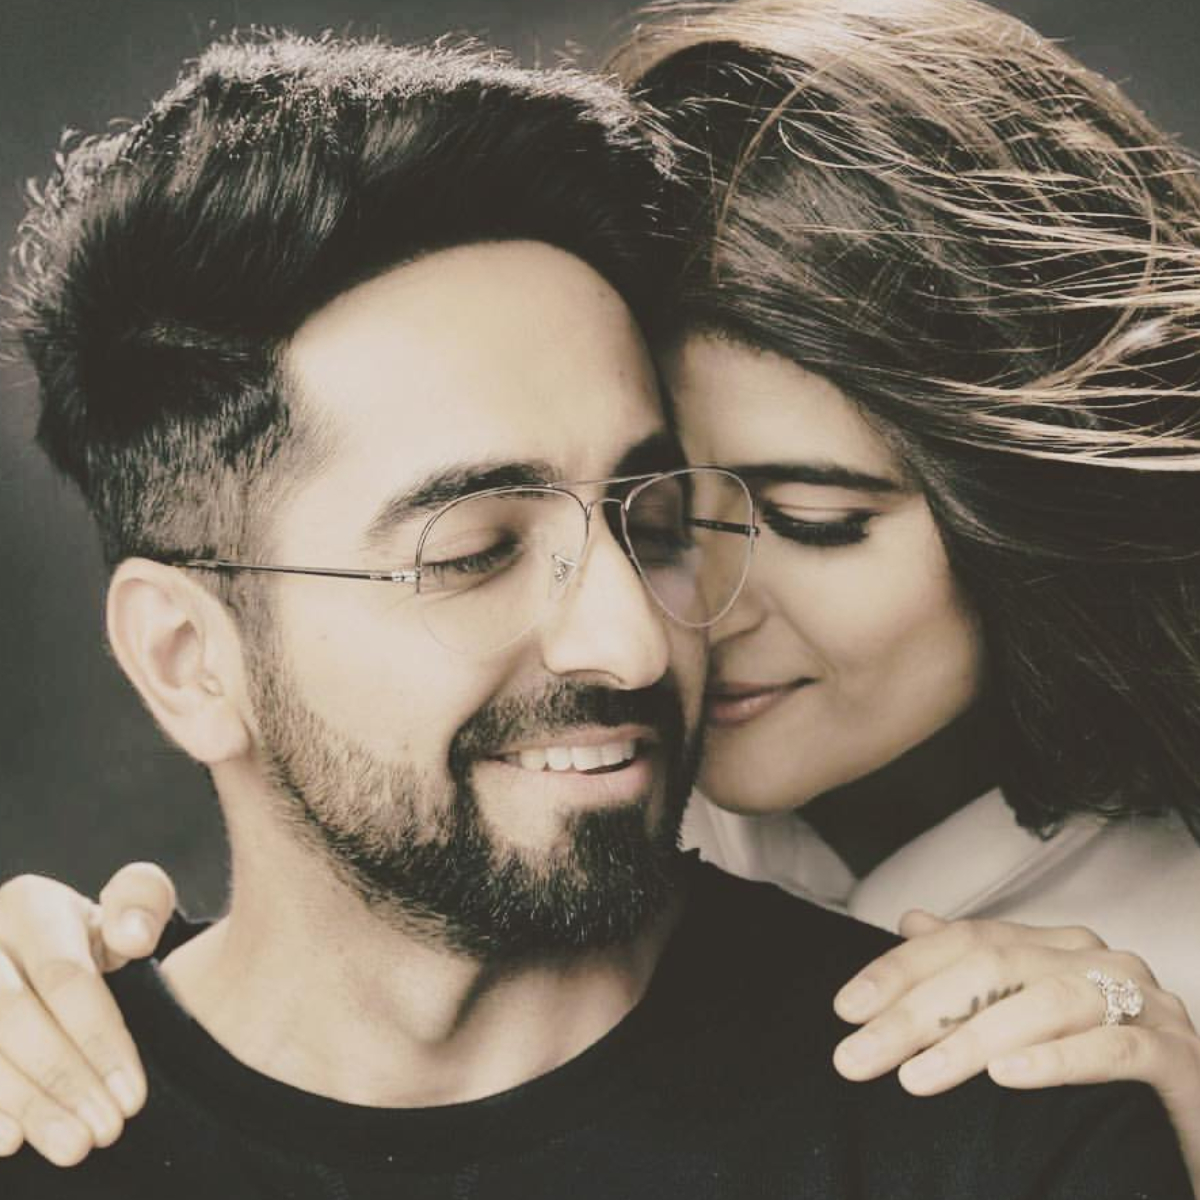 Ayushmann Khurrana breaks his Karva Chauth fast for wife Tahira Kashyap in the most adorable way; Watch Video